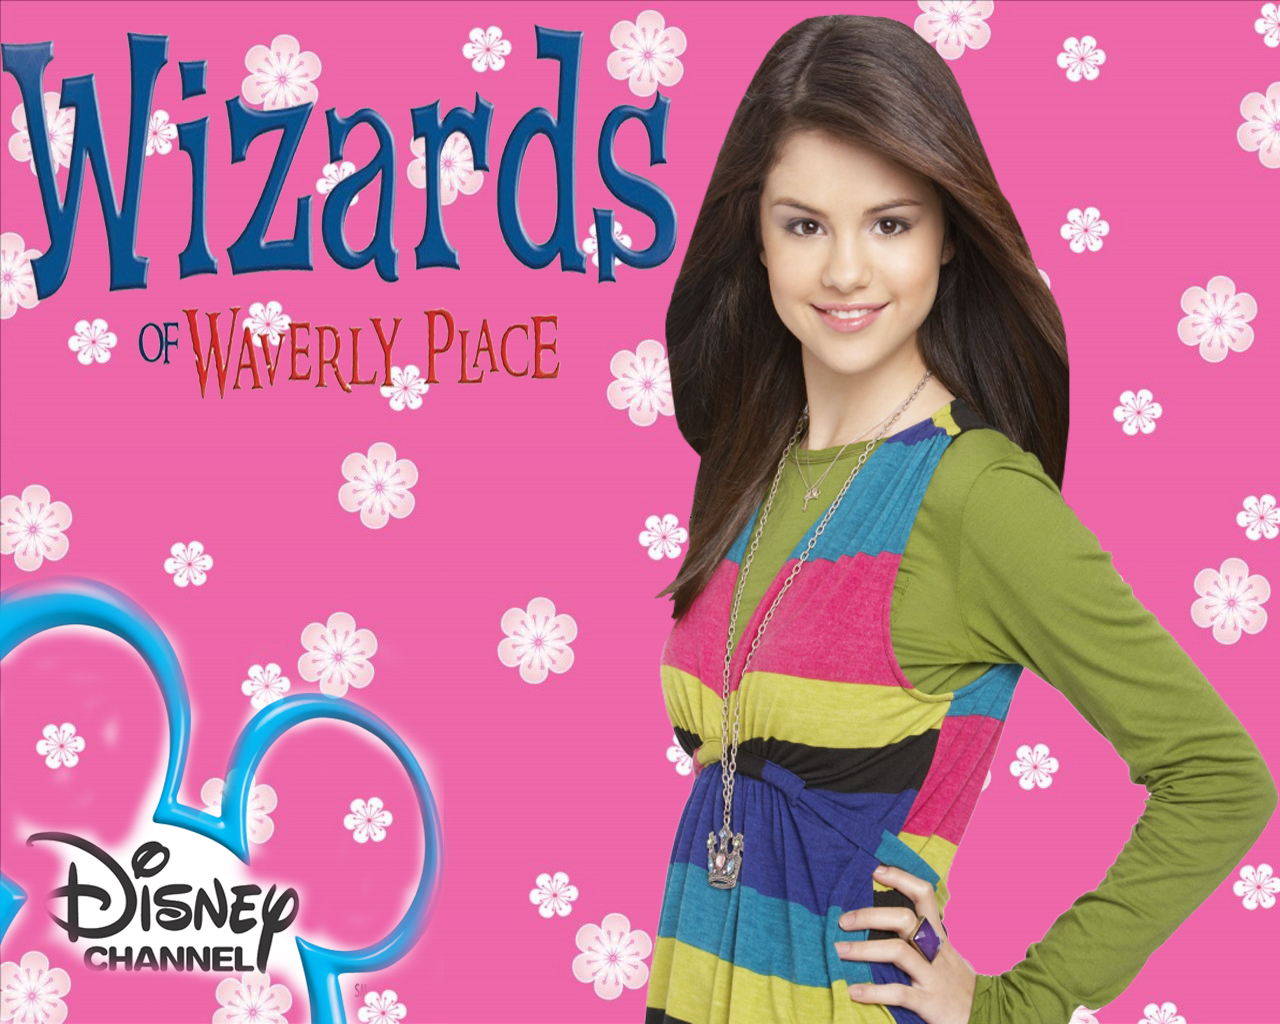 Alex Russo furthermore Imagewgkl Wizards Of Waverly Place Alex Wand moreover Chilean Miners The 33 Antontonio Banderas Juan Illanes San Jose Mine furthermore Halloween Shows Diy Costume And Craft Ideas besides Wizards Of Waverly Place Sexy. on wizards of waverly place spells